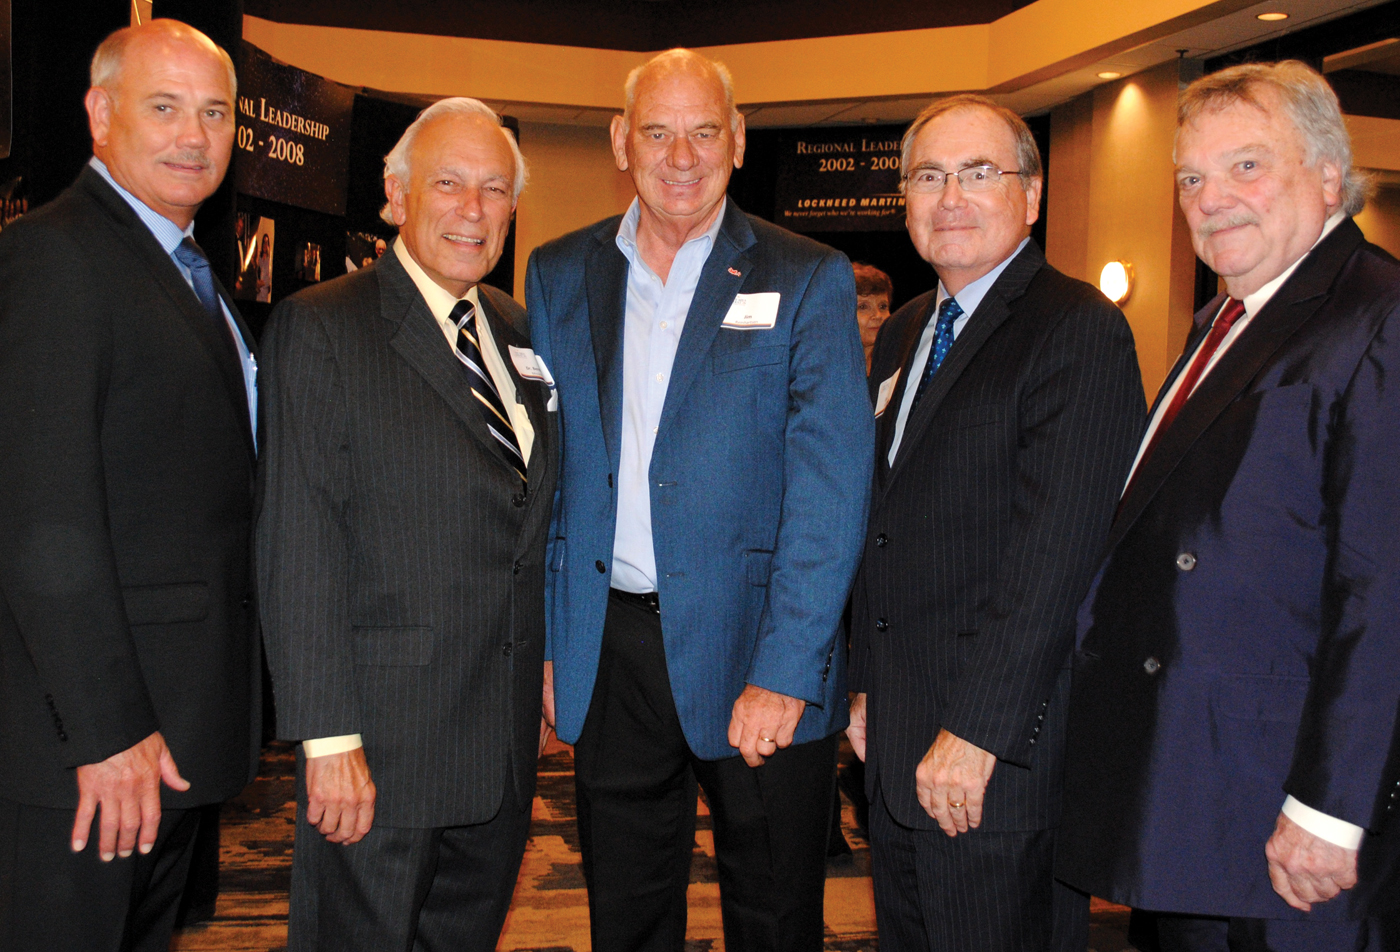 Jim Reinhartsen, center, who served as president of the Bay Area Houston Economic Partnership for 16 years, gets a warm welcome back from current BAHEP President Bob Mitchell, former Chairmen Dr. Bernard Milstein and Dr. William Staples and long-time board member, attorney Dick Gregg Jr., , from left, during BAHEP's 40th Anniversary Celebration.